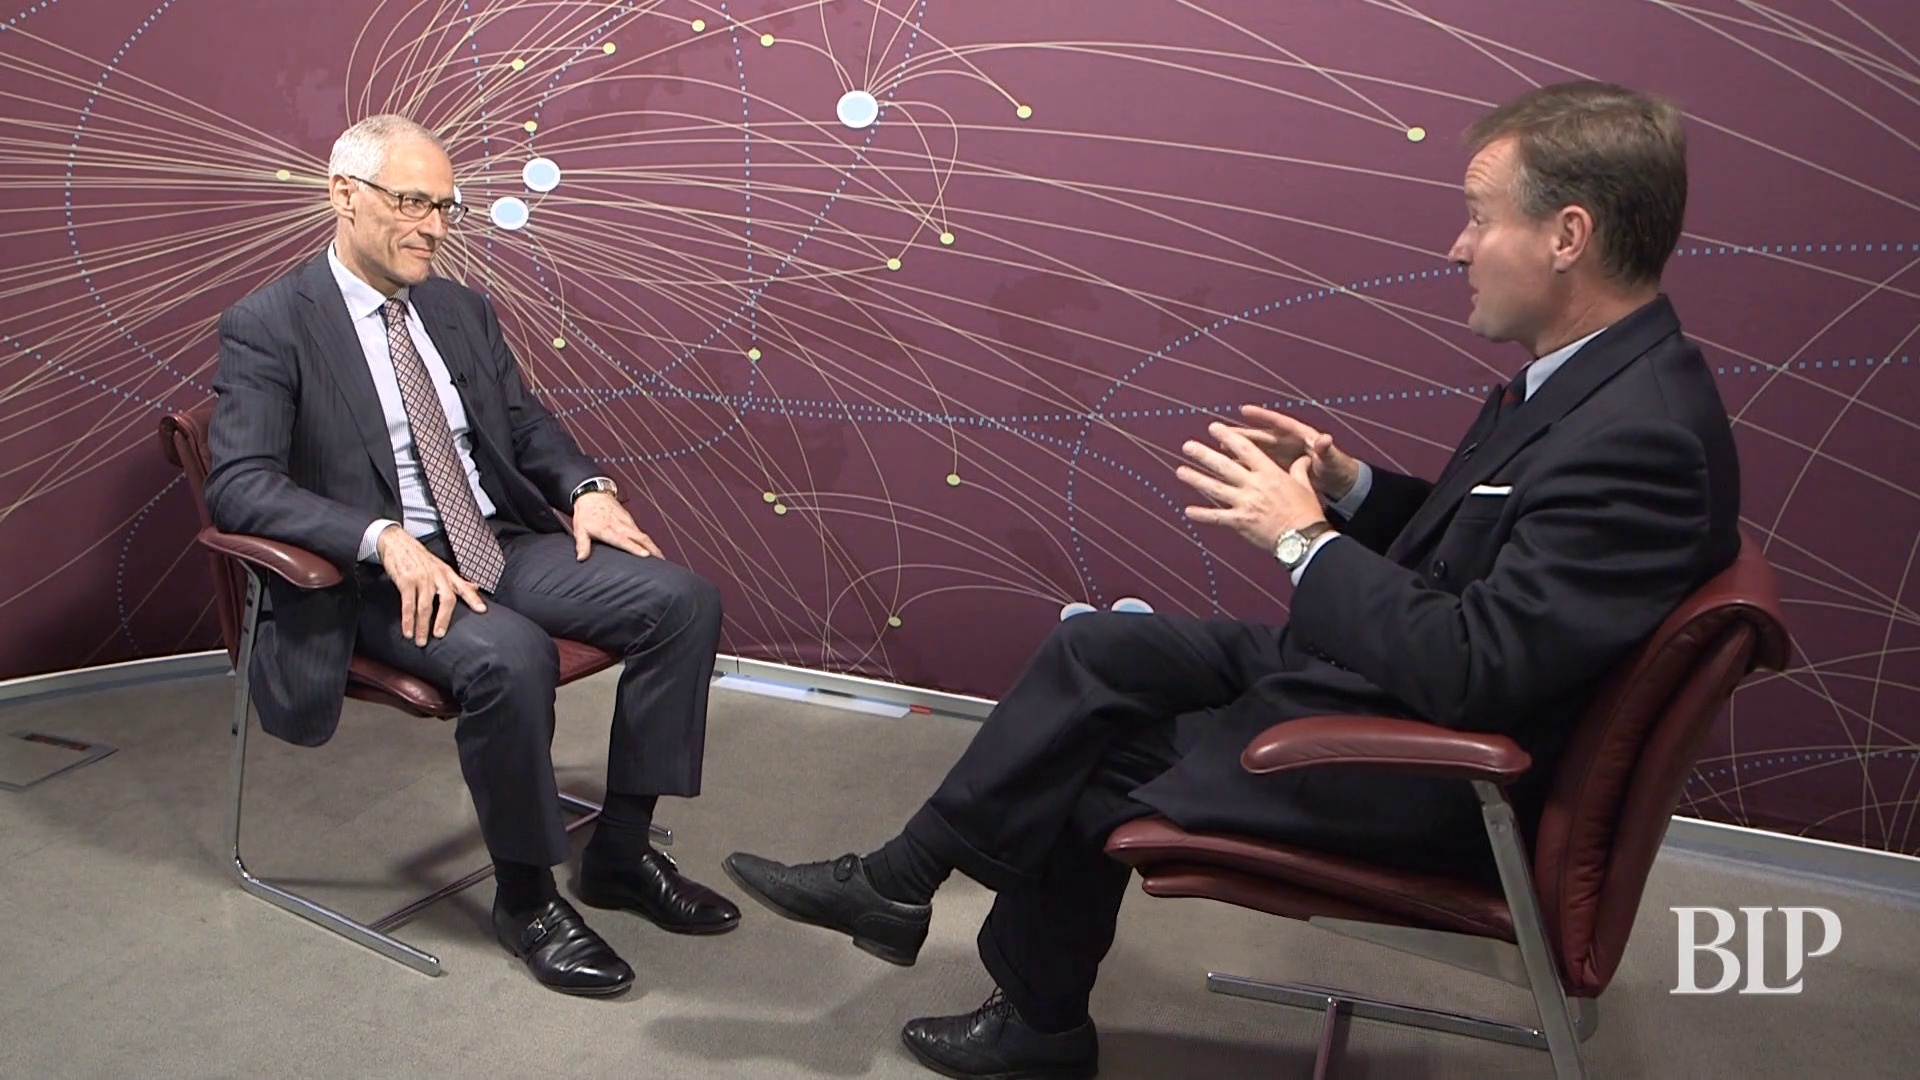 Still image from 'What US clients need to know about European M&A deals' video